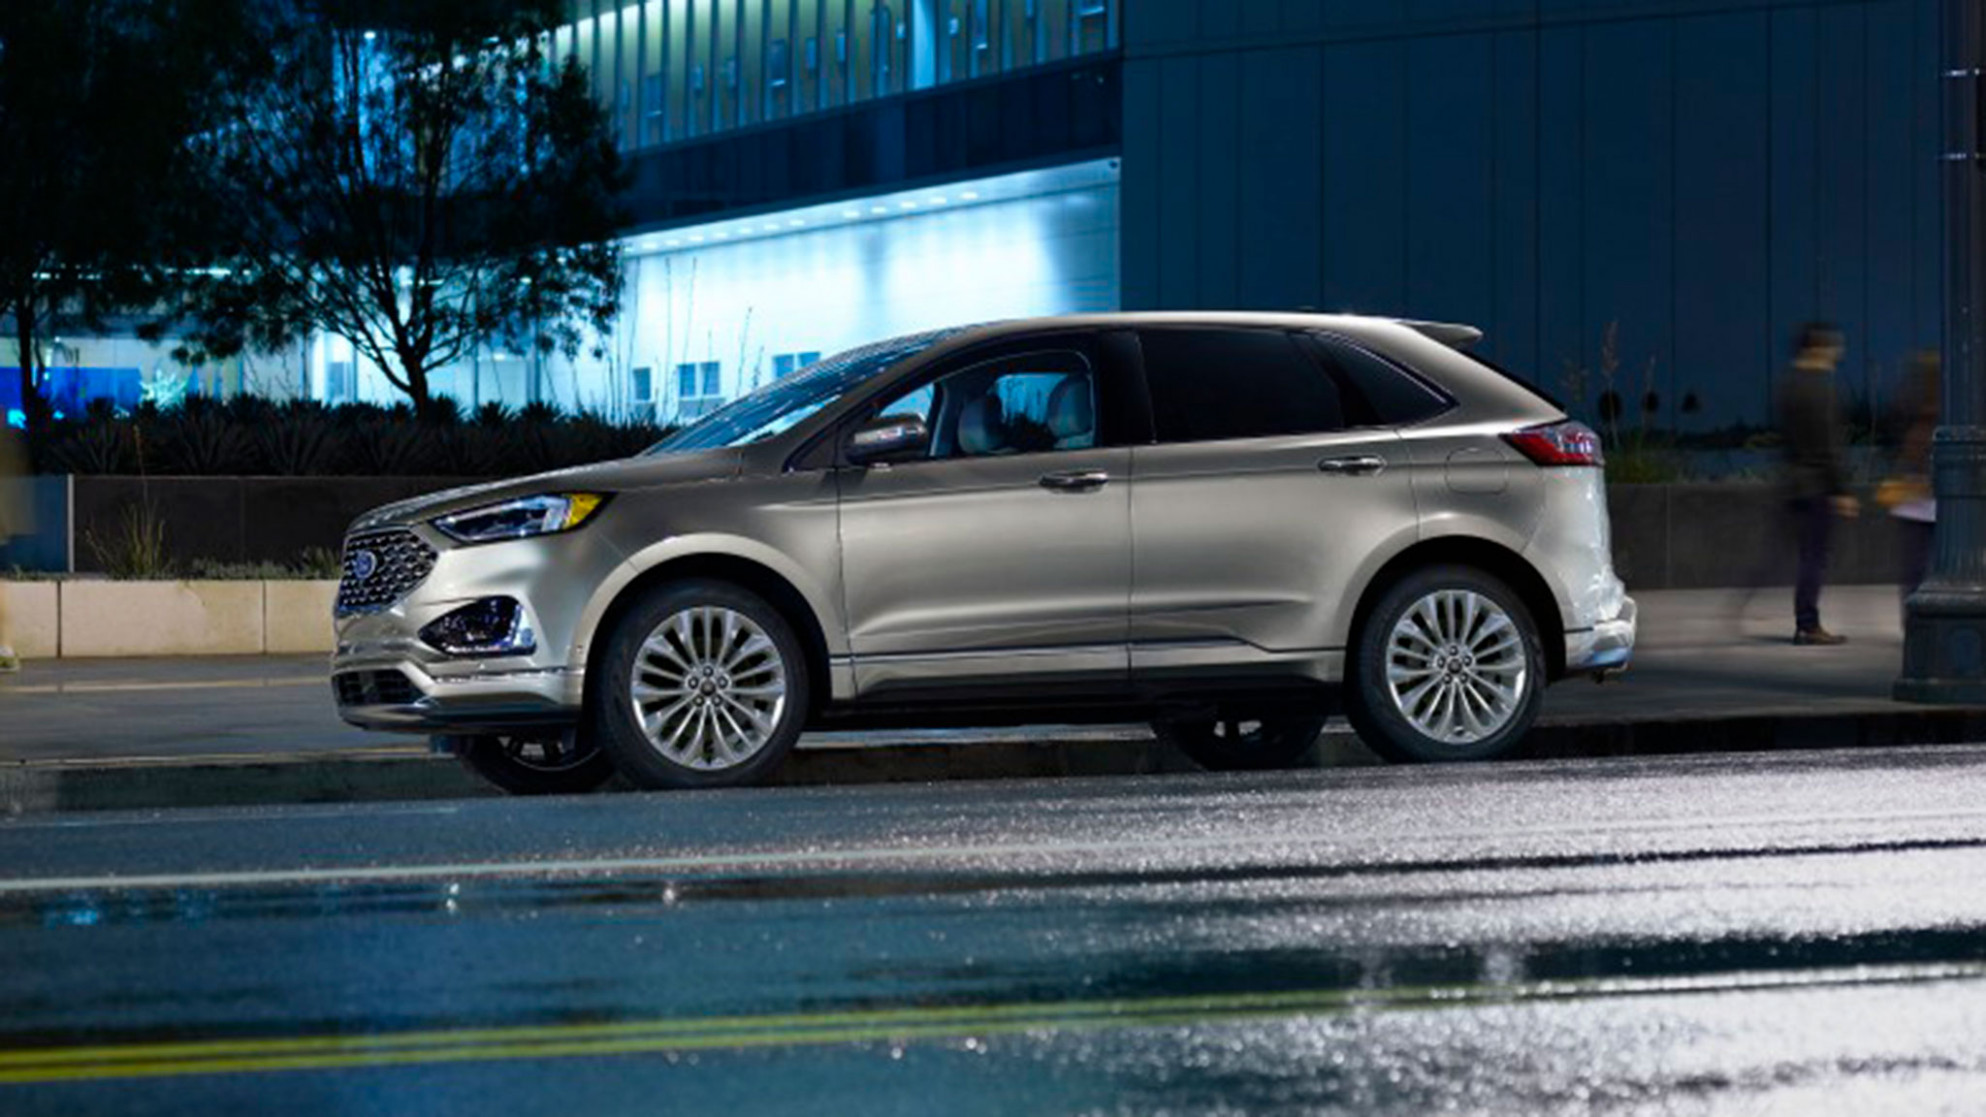 6 Ford Edge Buyer's Guide: Reviews, Specs, Comparisons